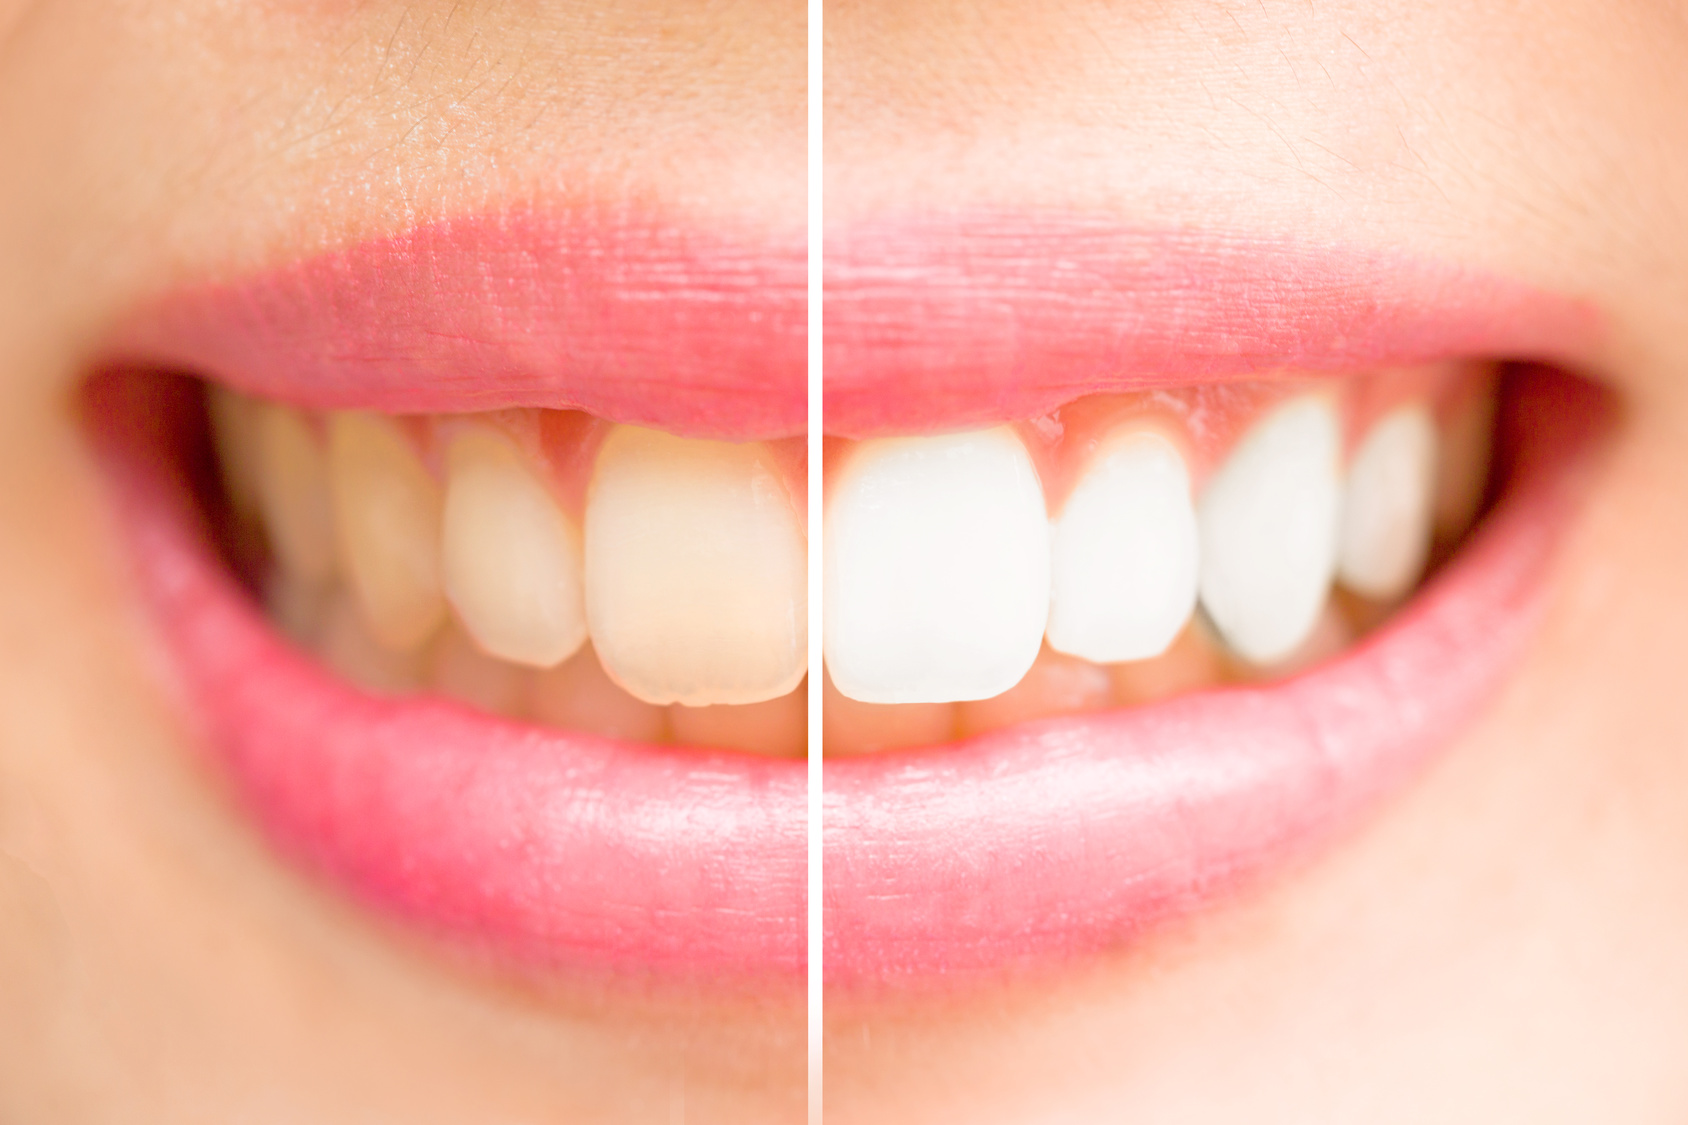 Teeth whitening treatment at Surrey Dental Surgery